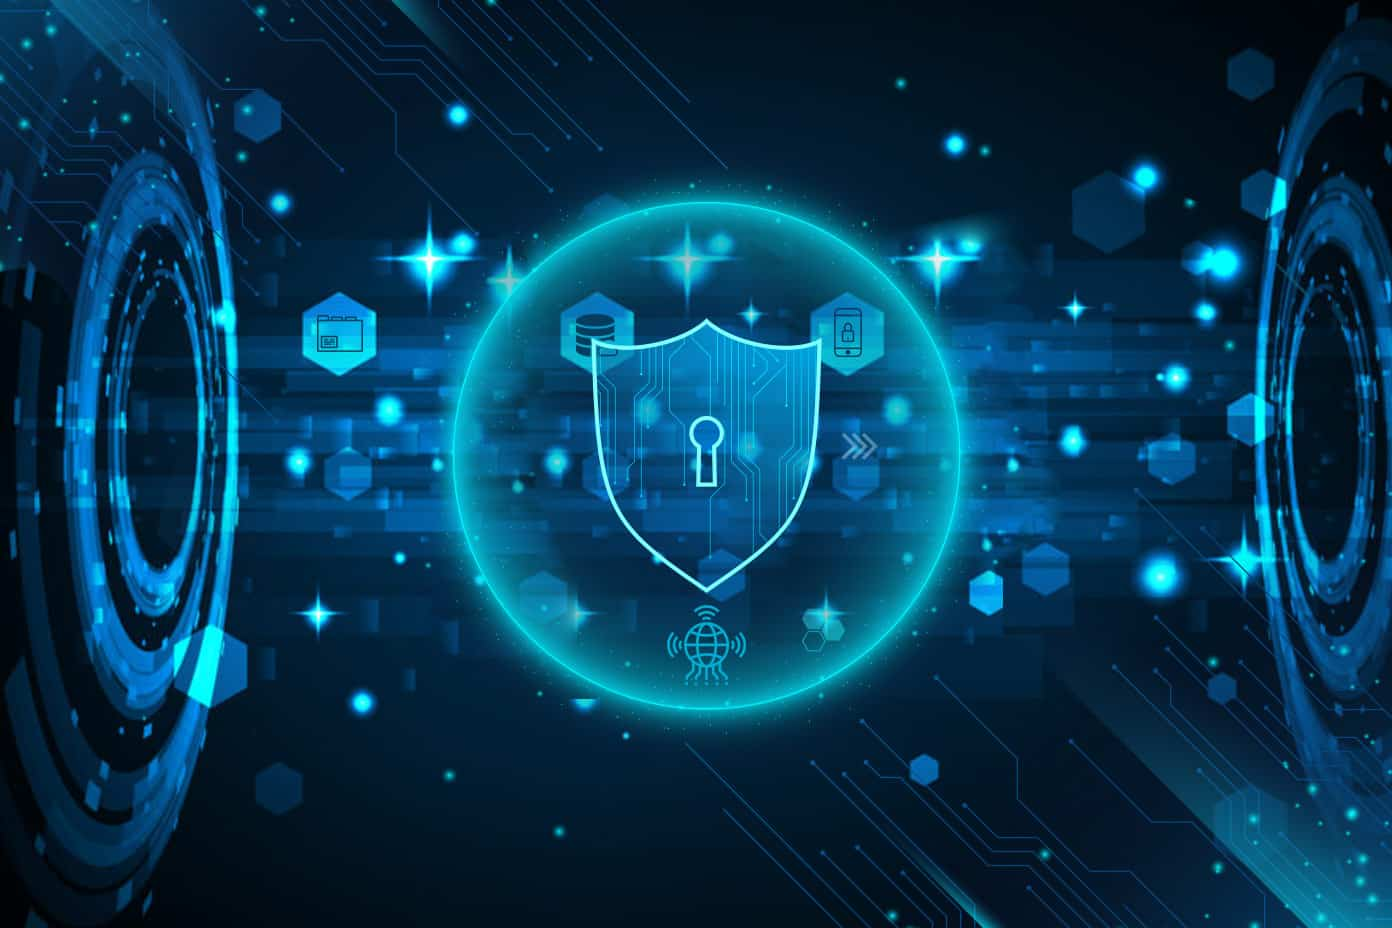 Top Cyber Security Trends That Will Affect Your Business in 2020